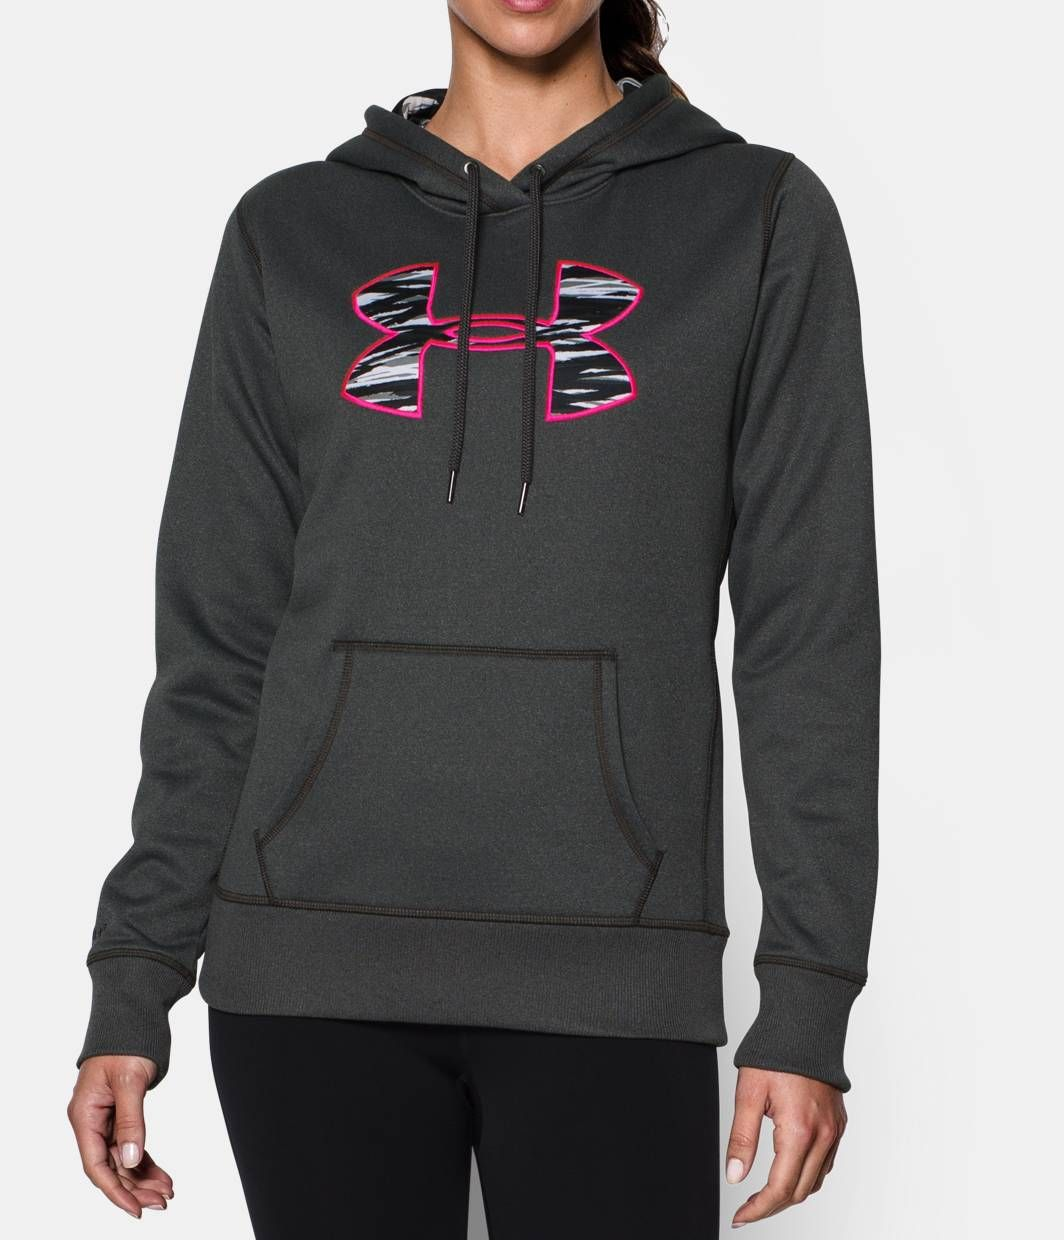 f257fa895 Shop Under Armour for Women's UA Storm Armour® Fleece Printed Big Logo  Hoodie in our Womens Tops department. Free shipping is available in US.